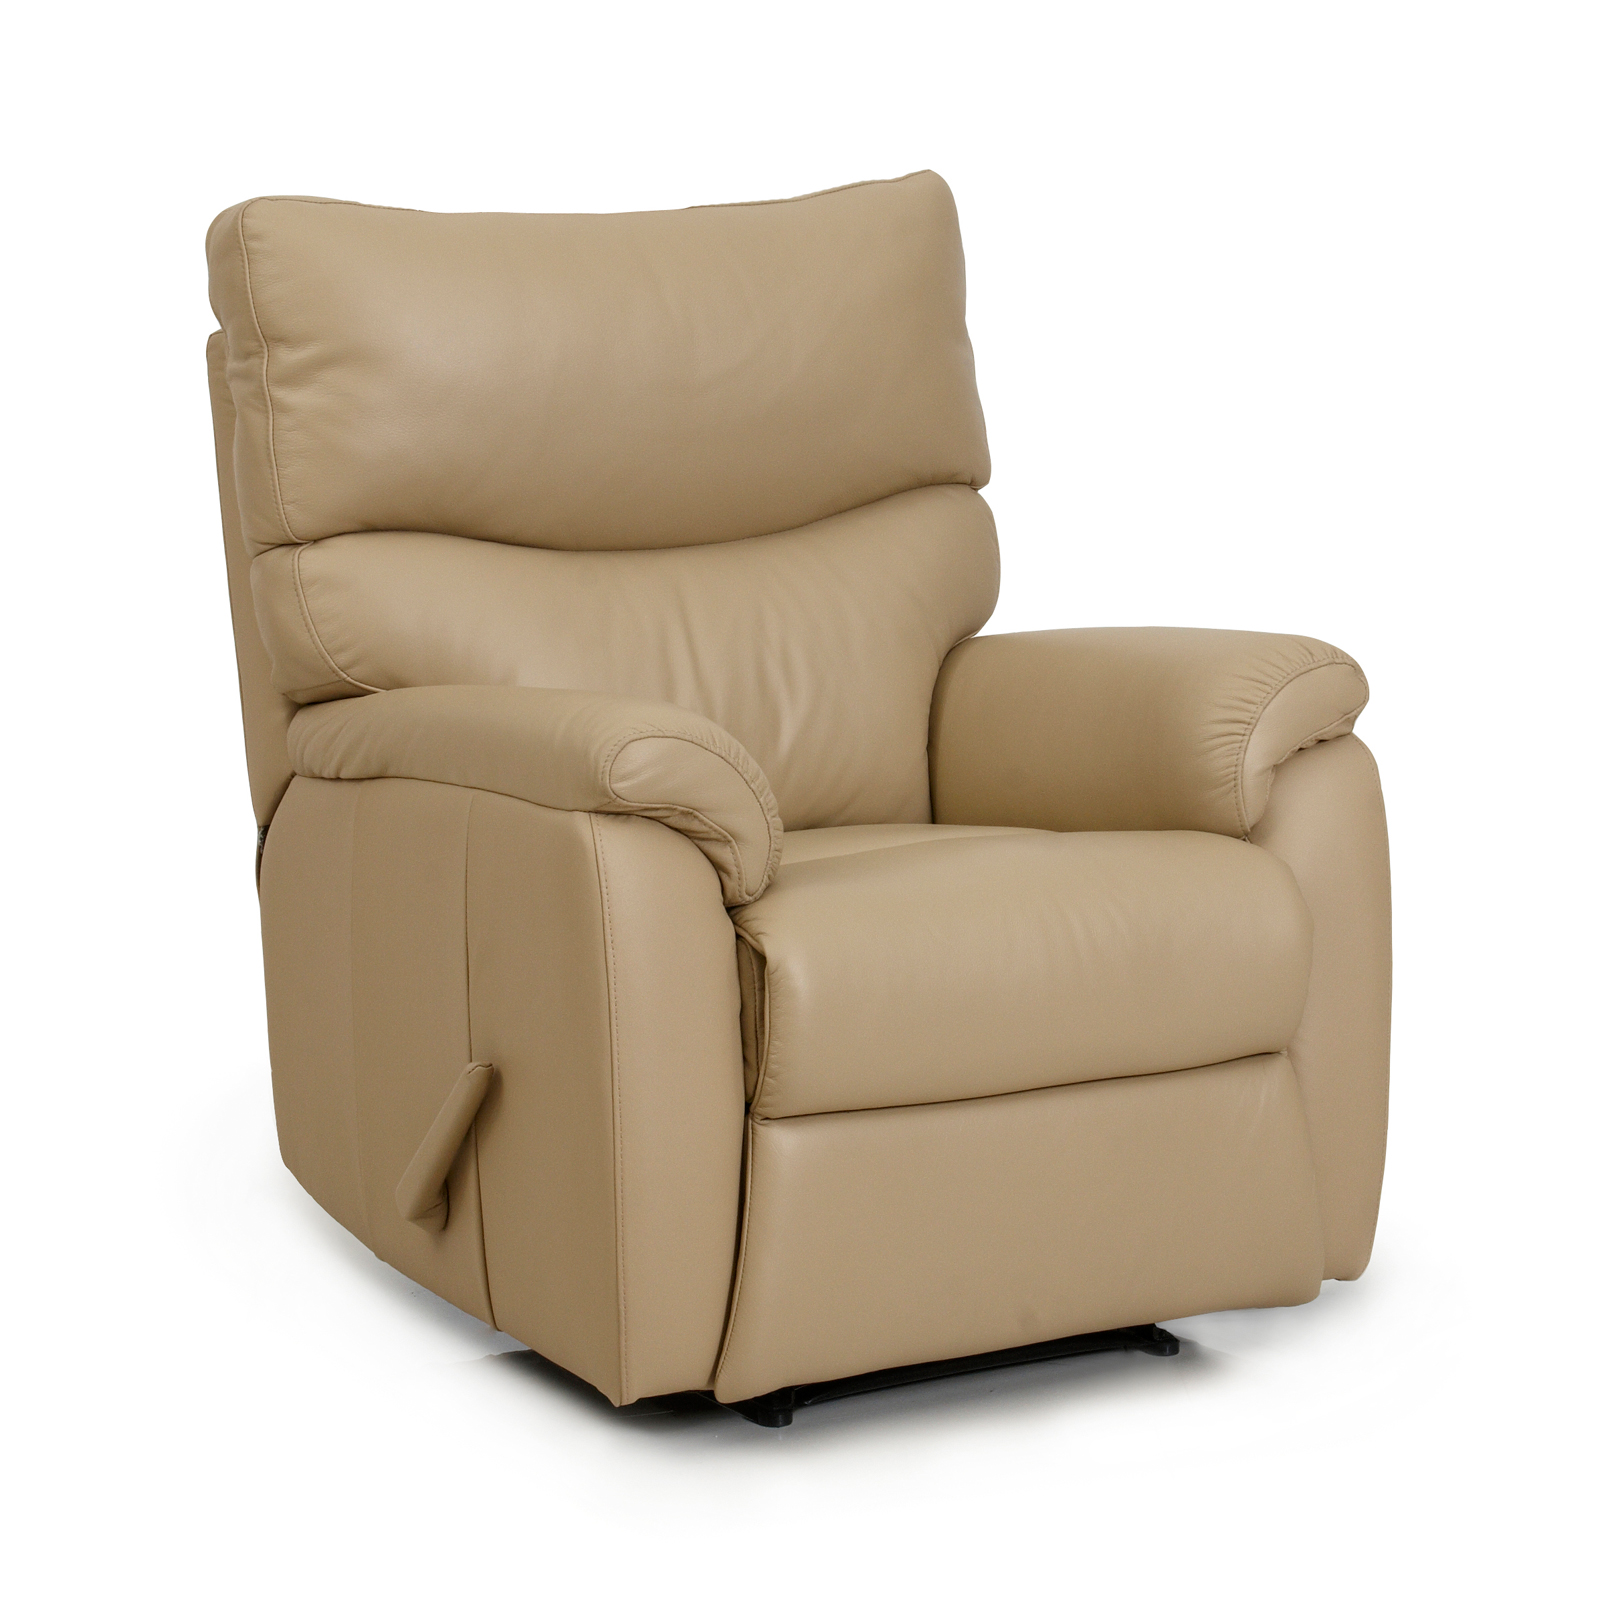 Barcalounger Bourne Ii Leather Wall Hugger Recliner At